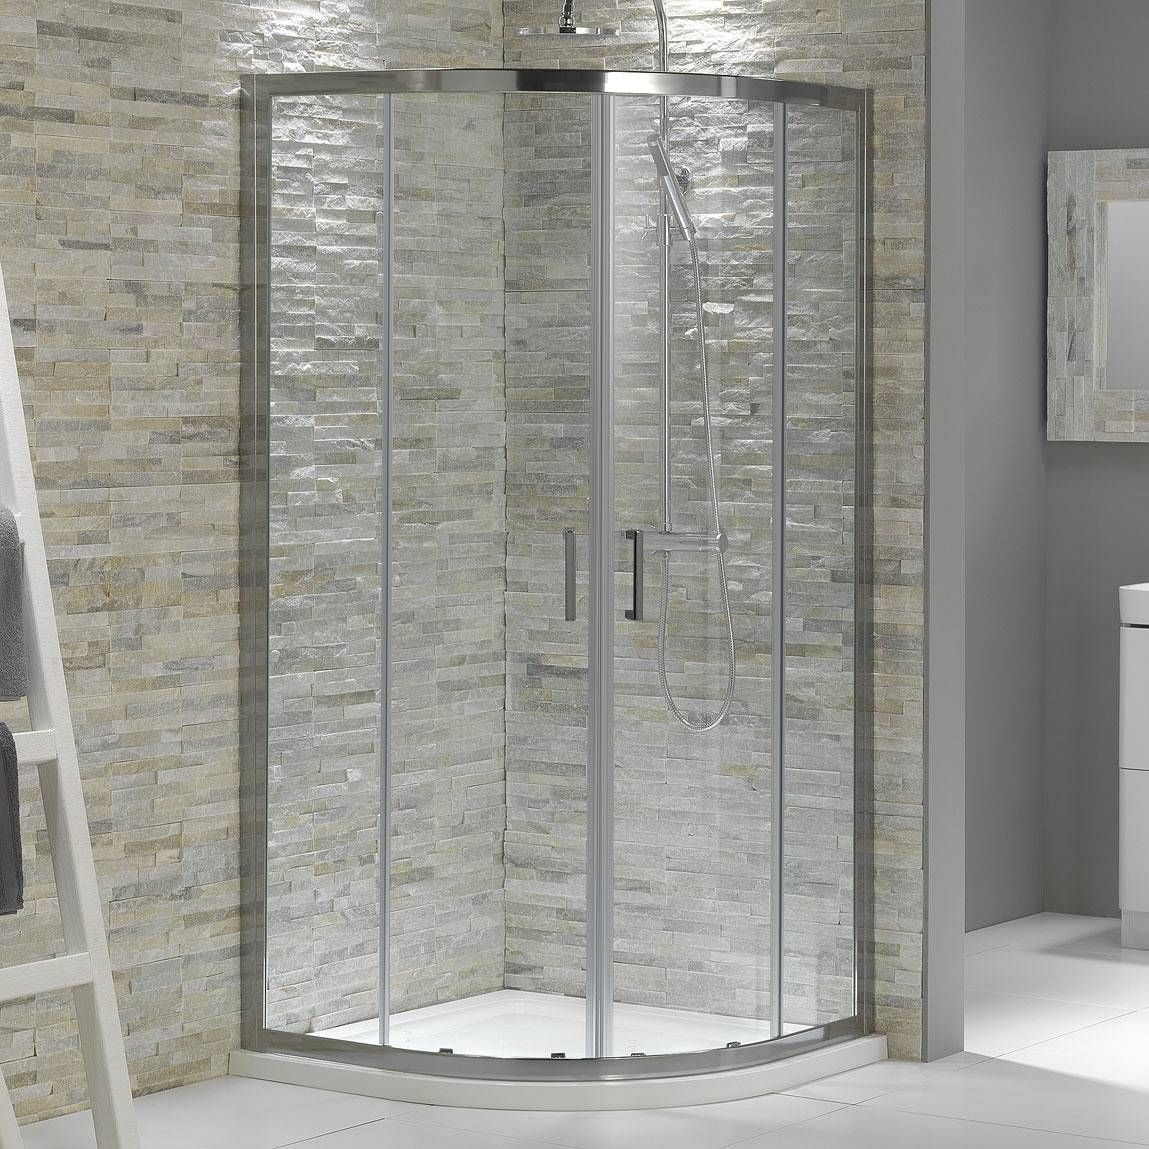 Victoria Plumb Showers >> V6 Quadrant Shower Enclosure 900 Now Only 139 99 From Victoria